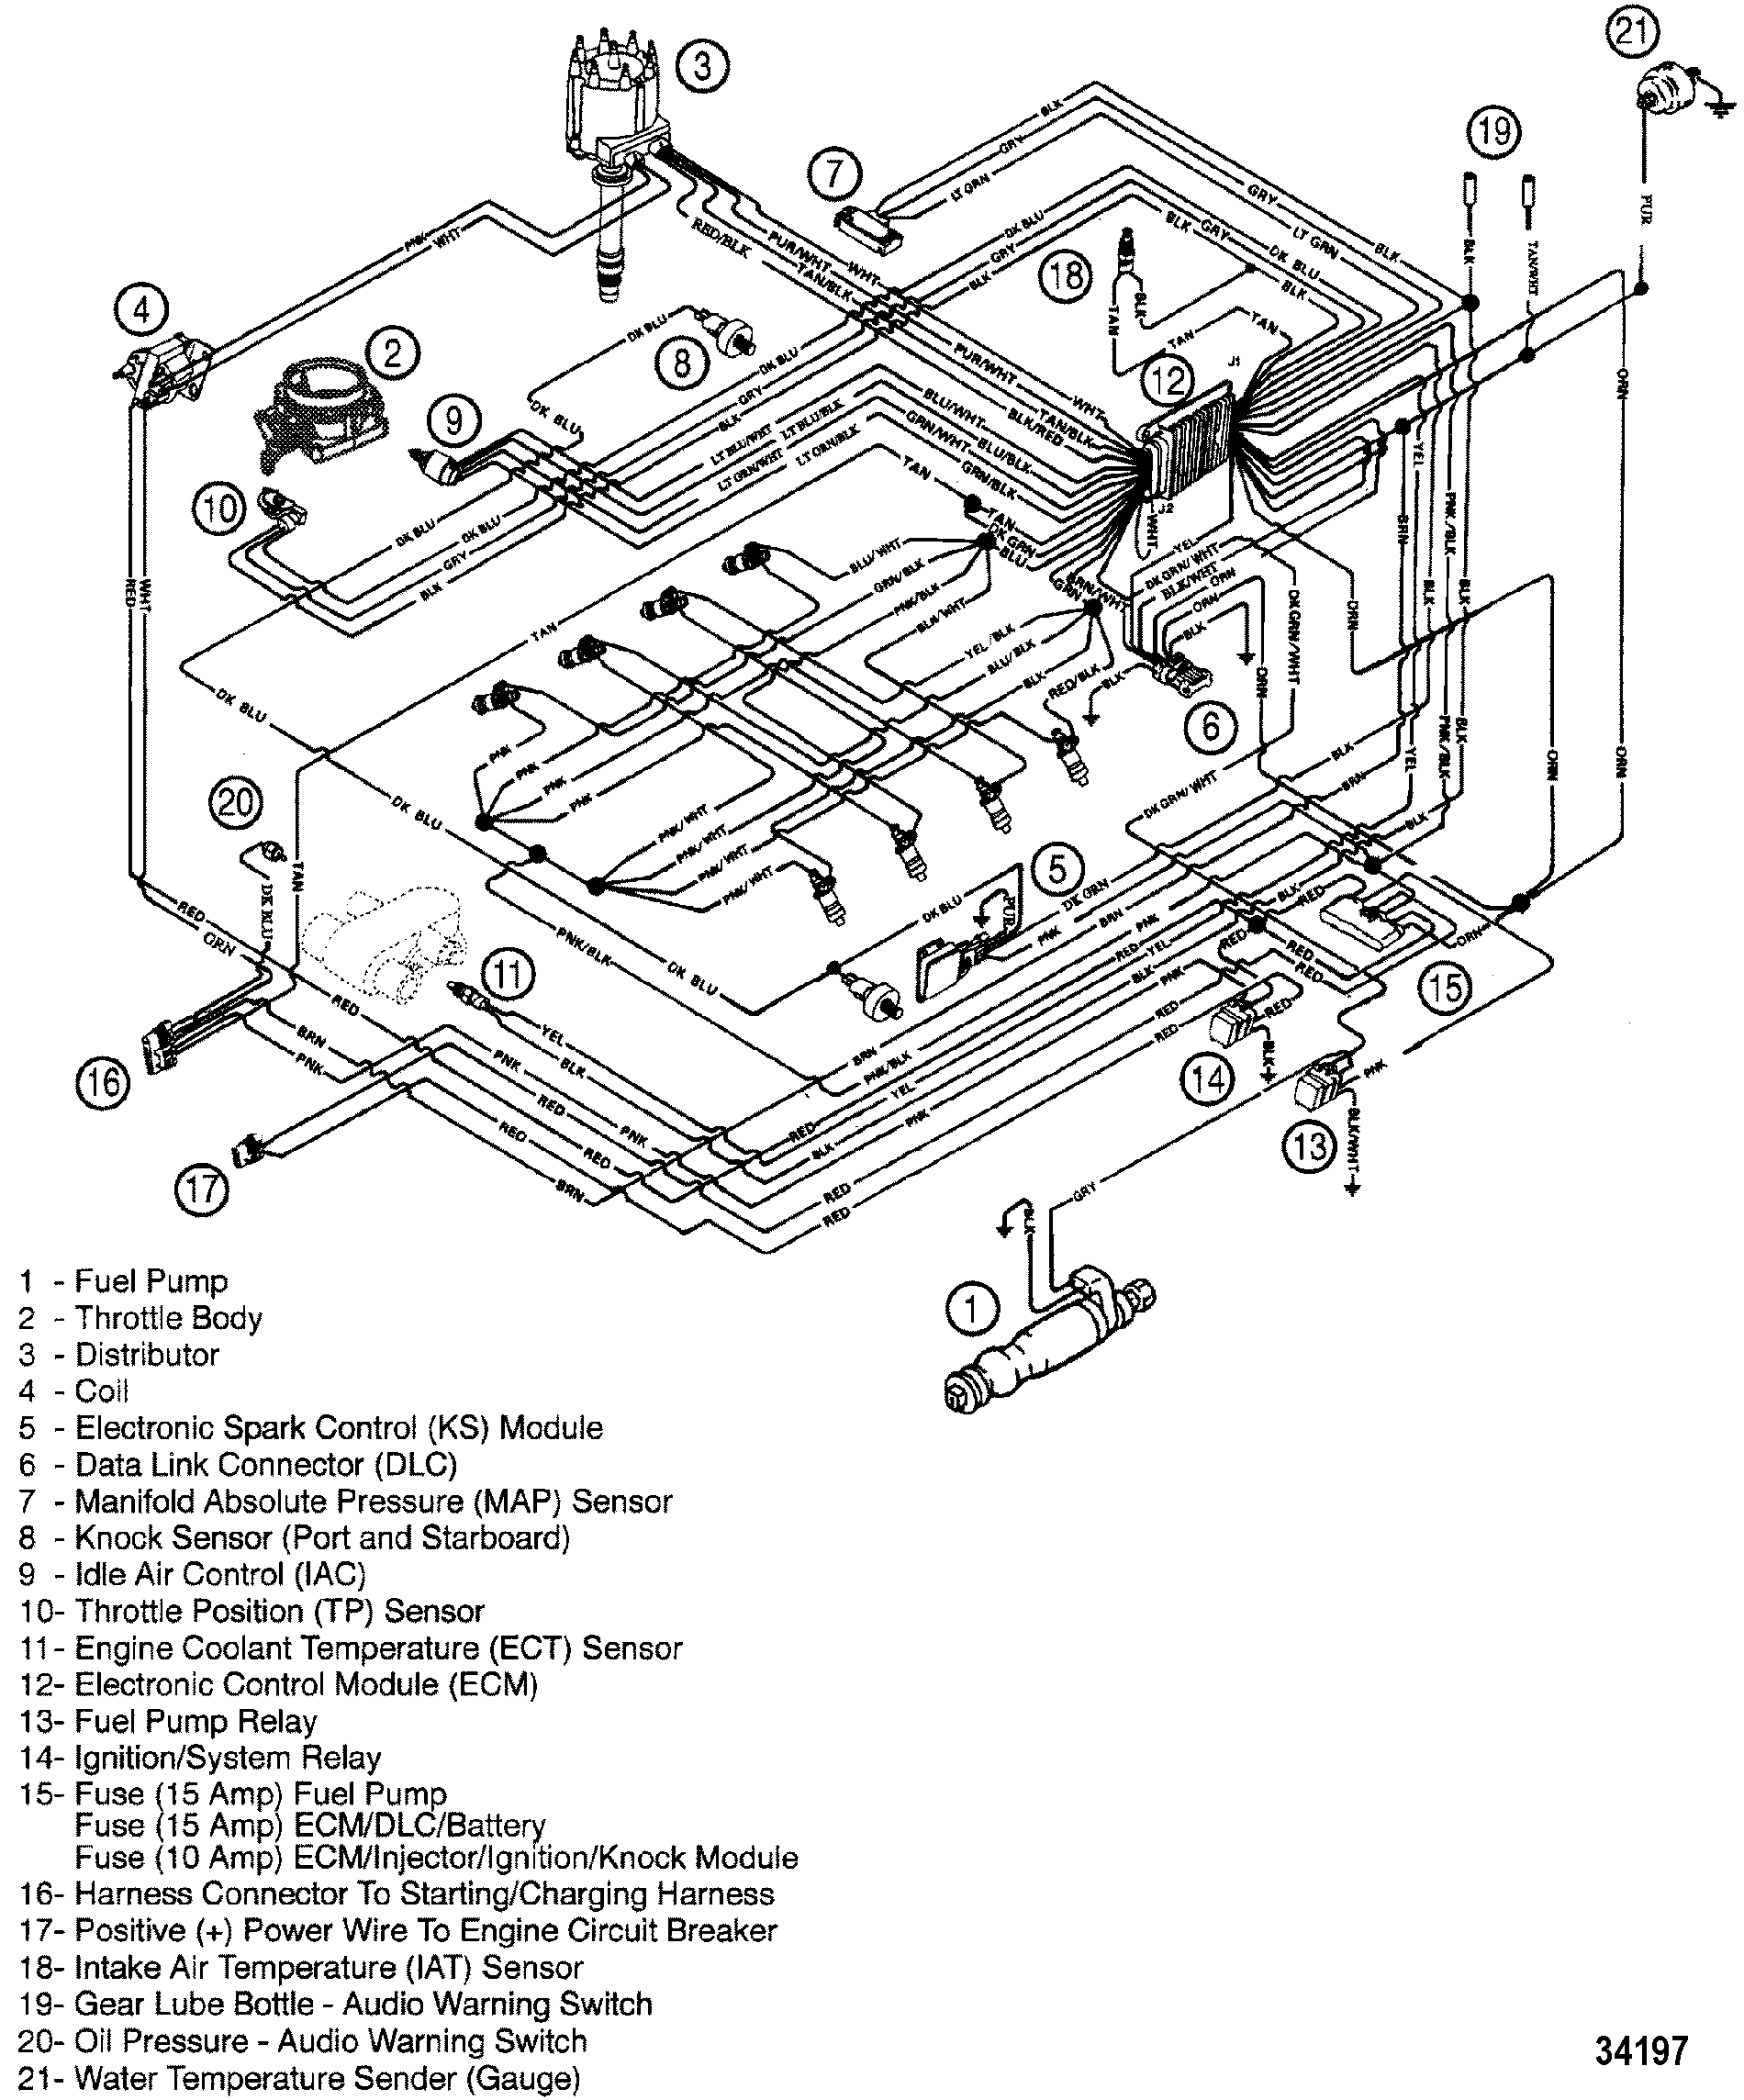 2001 Mercruiser 5 0 Wiring Diagram - Wiring Diagram Expert on leviton gfci wiring-diagram, ford f550 wiring-diagram, international 4300 wiring-diagram, honeywell aquastat wiring-diagram, sears craftsman wiring-diagram, isuzu npr wiring-diagram, emg pickups wiring-diagram, trim sender wiring-diagram, voltmeter wiring-diagram, peterbilt 387 wiring-diagram, leviton dimmer wiring-diagram, sea ray wiring-diagram, ford e-150 wiring-diagram, swm splitter wiring-diagram, lutron dimmer wiring-diagram, chevrolet colorado wiring-diagram, farmall cub wiring-diagram, gibson humbucker wiring-diagram, klipsch promedia 2.1 wiring-diagram, mercedes-benz wiring-diagram,